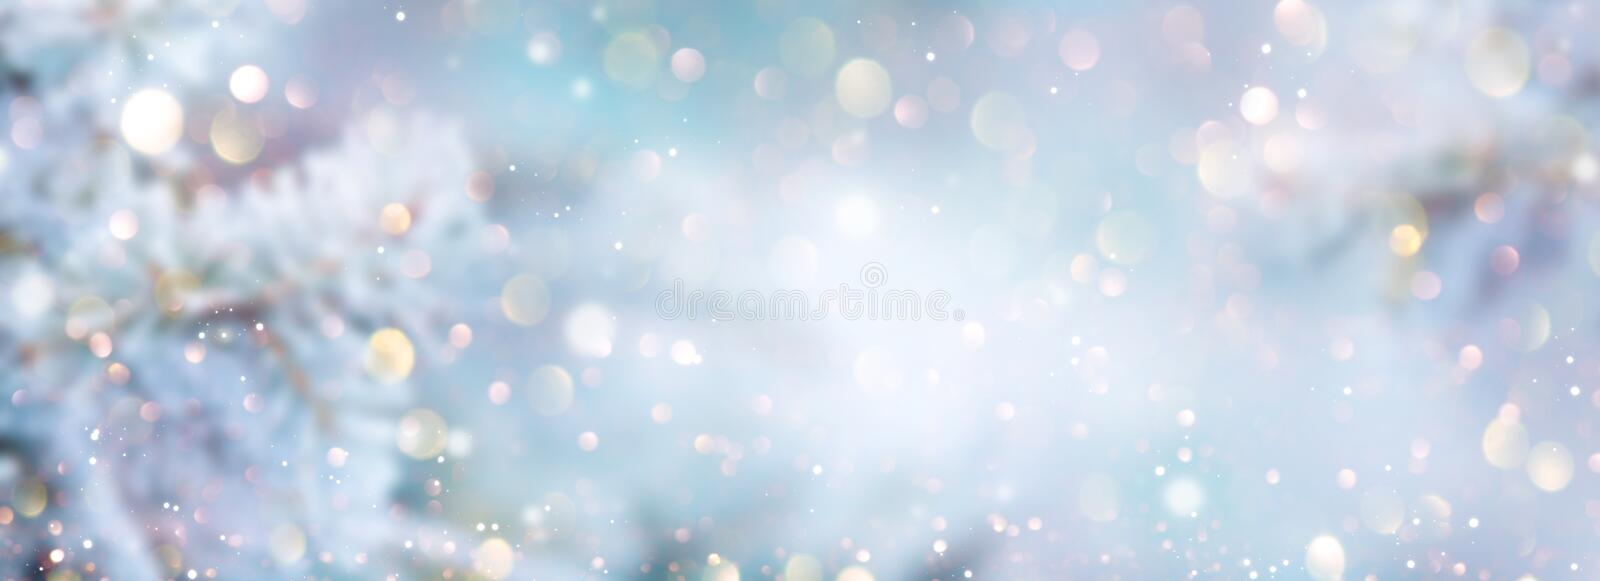 Christmas winter blurred background. Xmas tree with snow decorated with garland lights, holiday festive background. Widescreen backdrop. New year Winter art stock photos